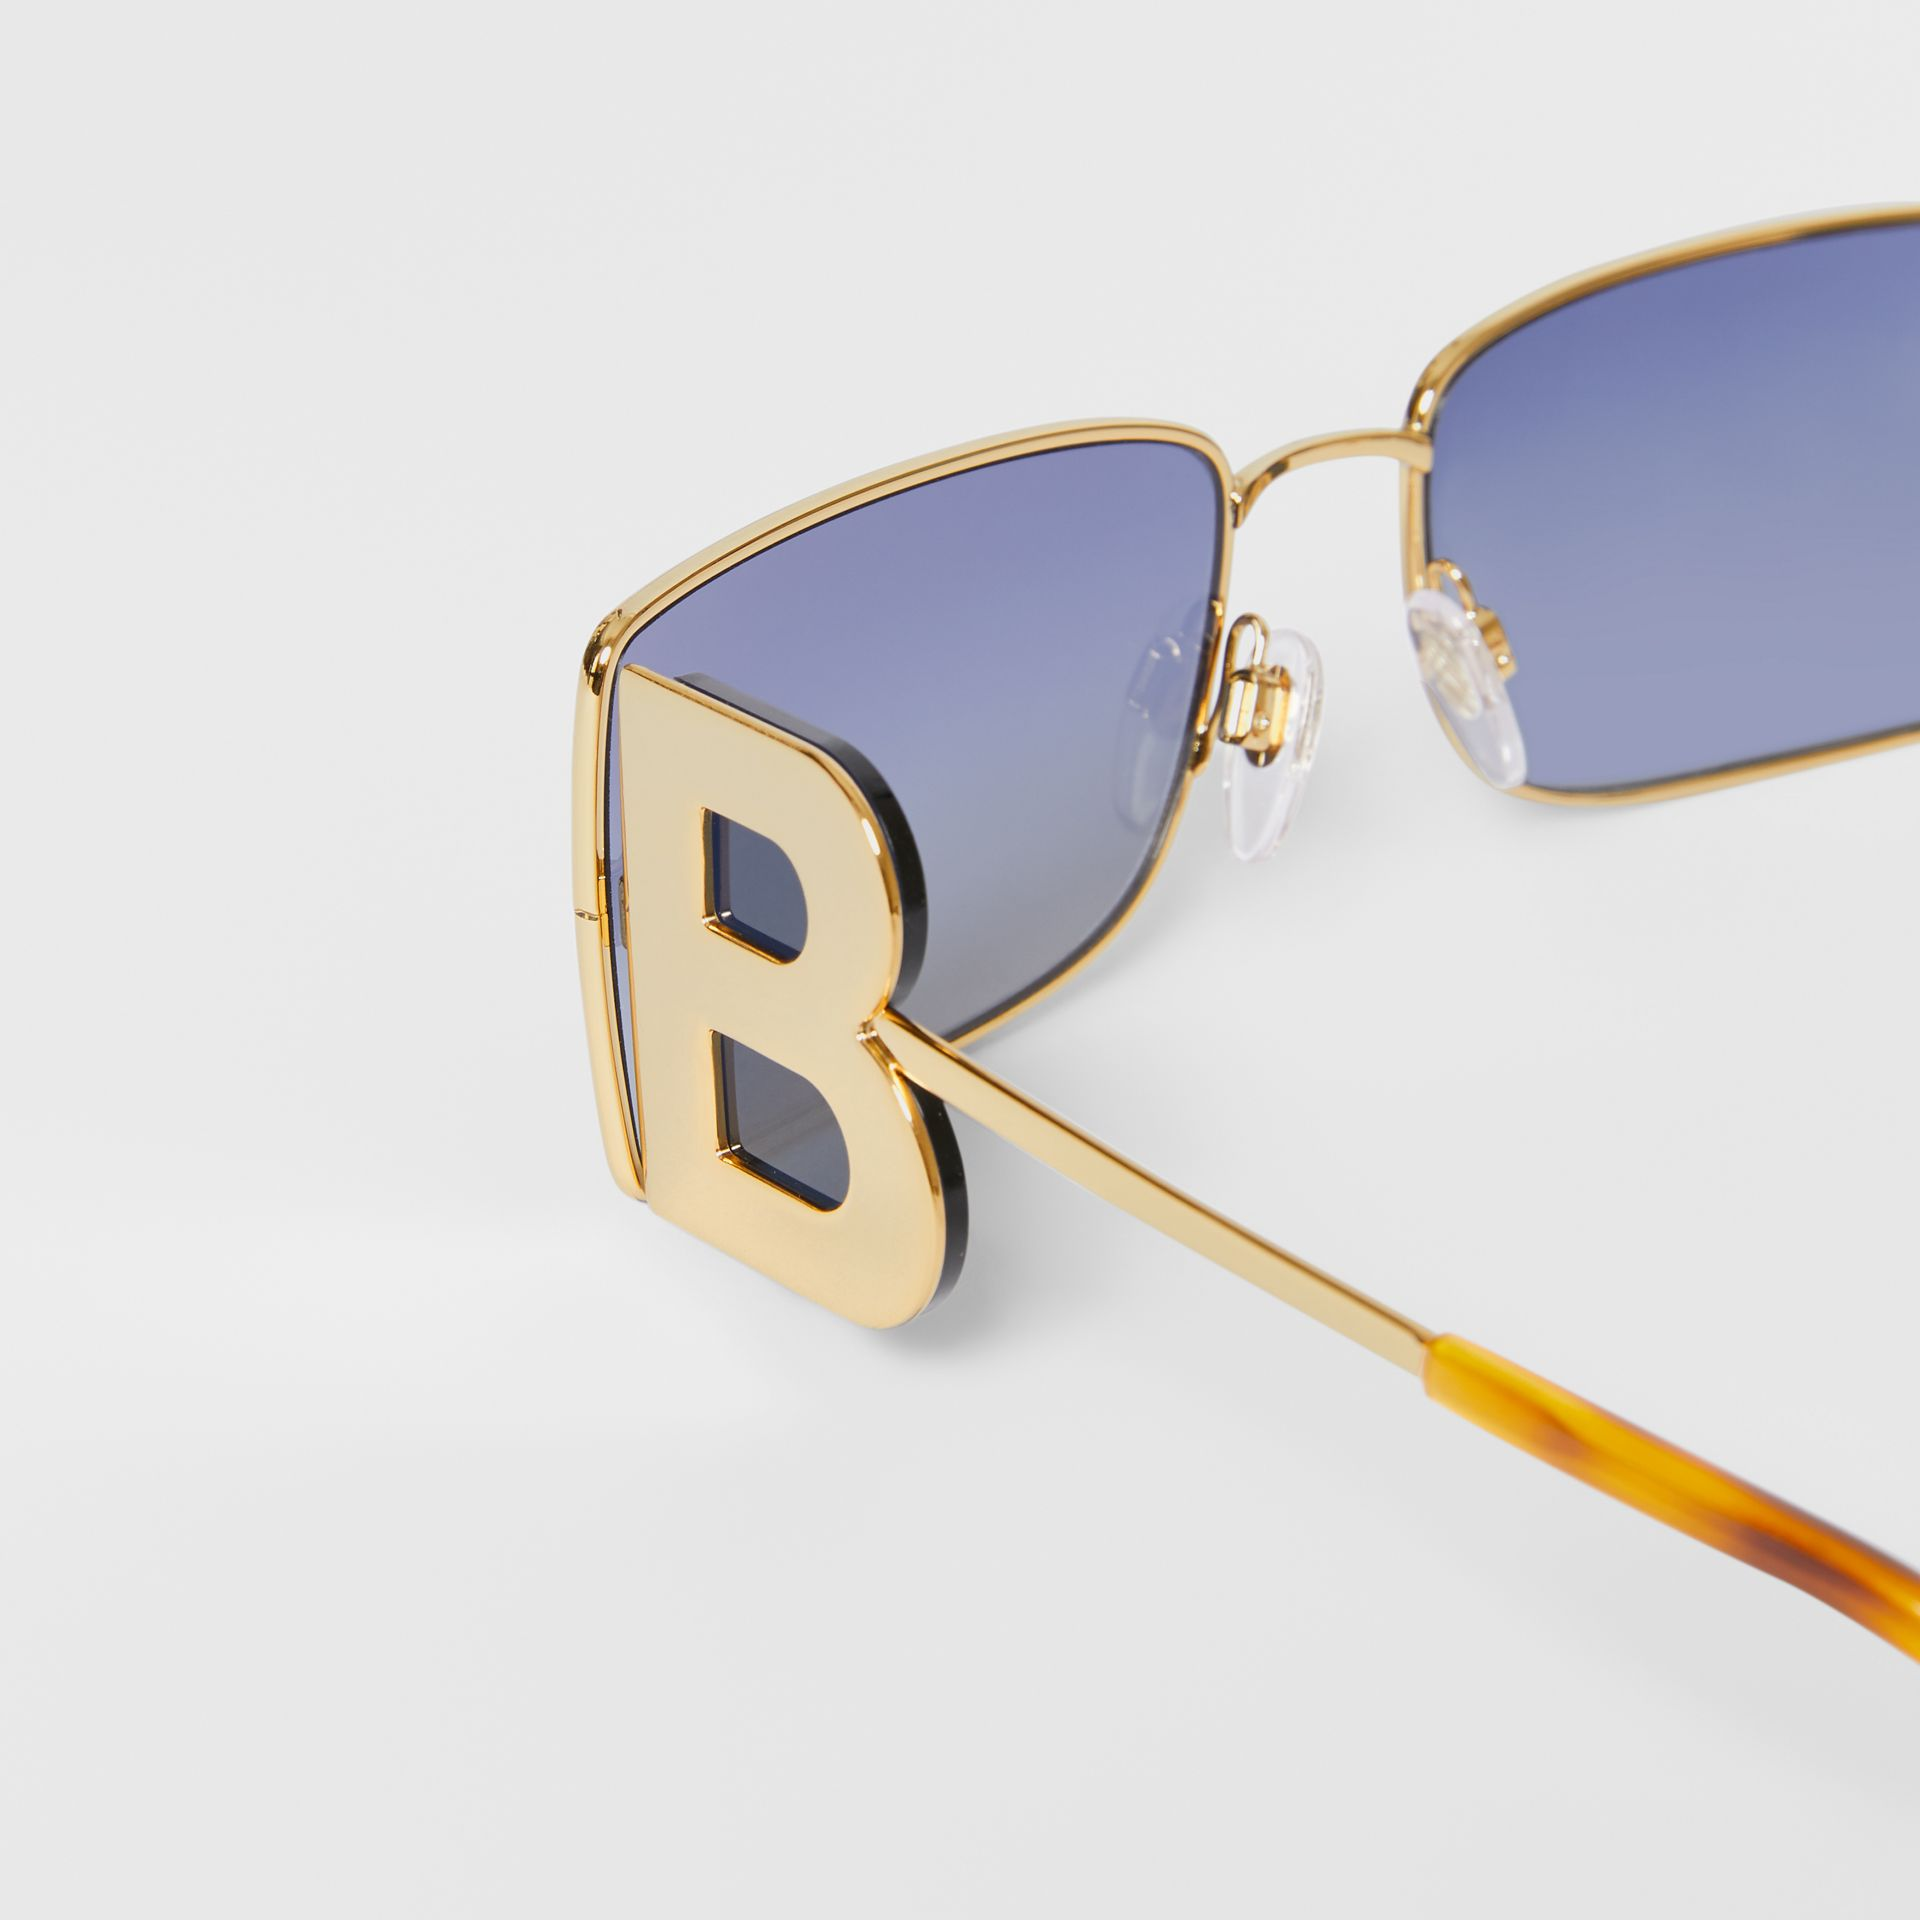 'B' Lens Detail Rectangular Frame Sunglasses in Amber Tortoiseshell - Women | Burberry - gallery image 1